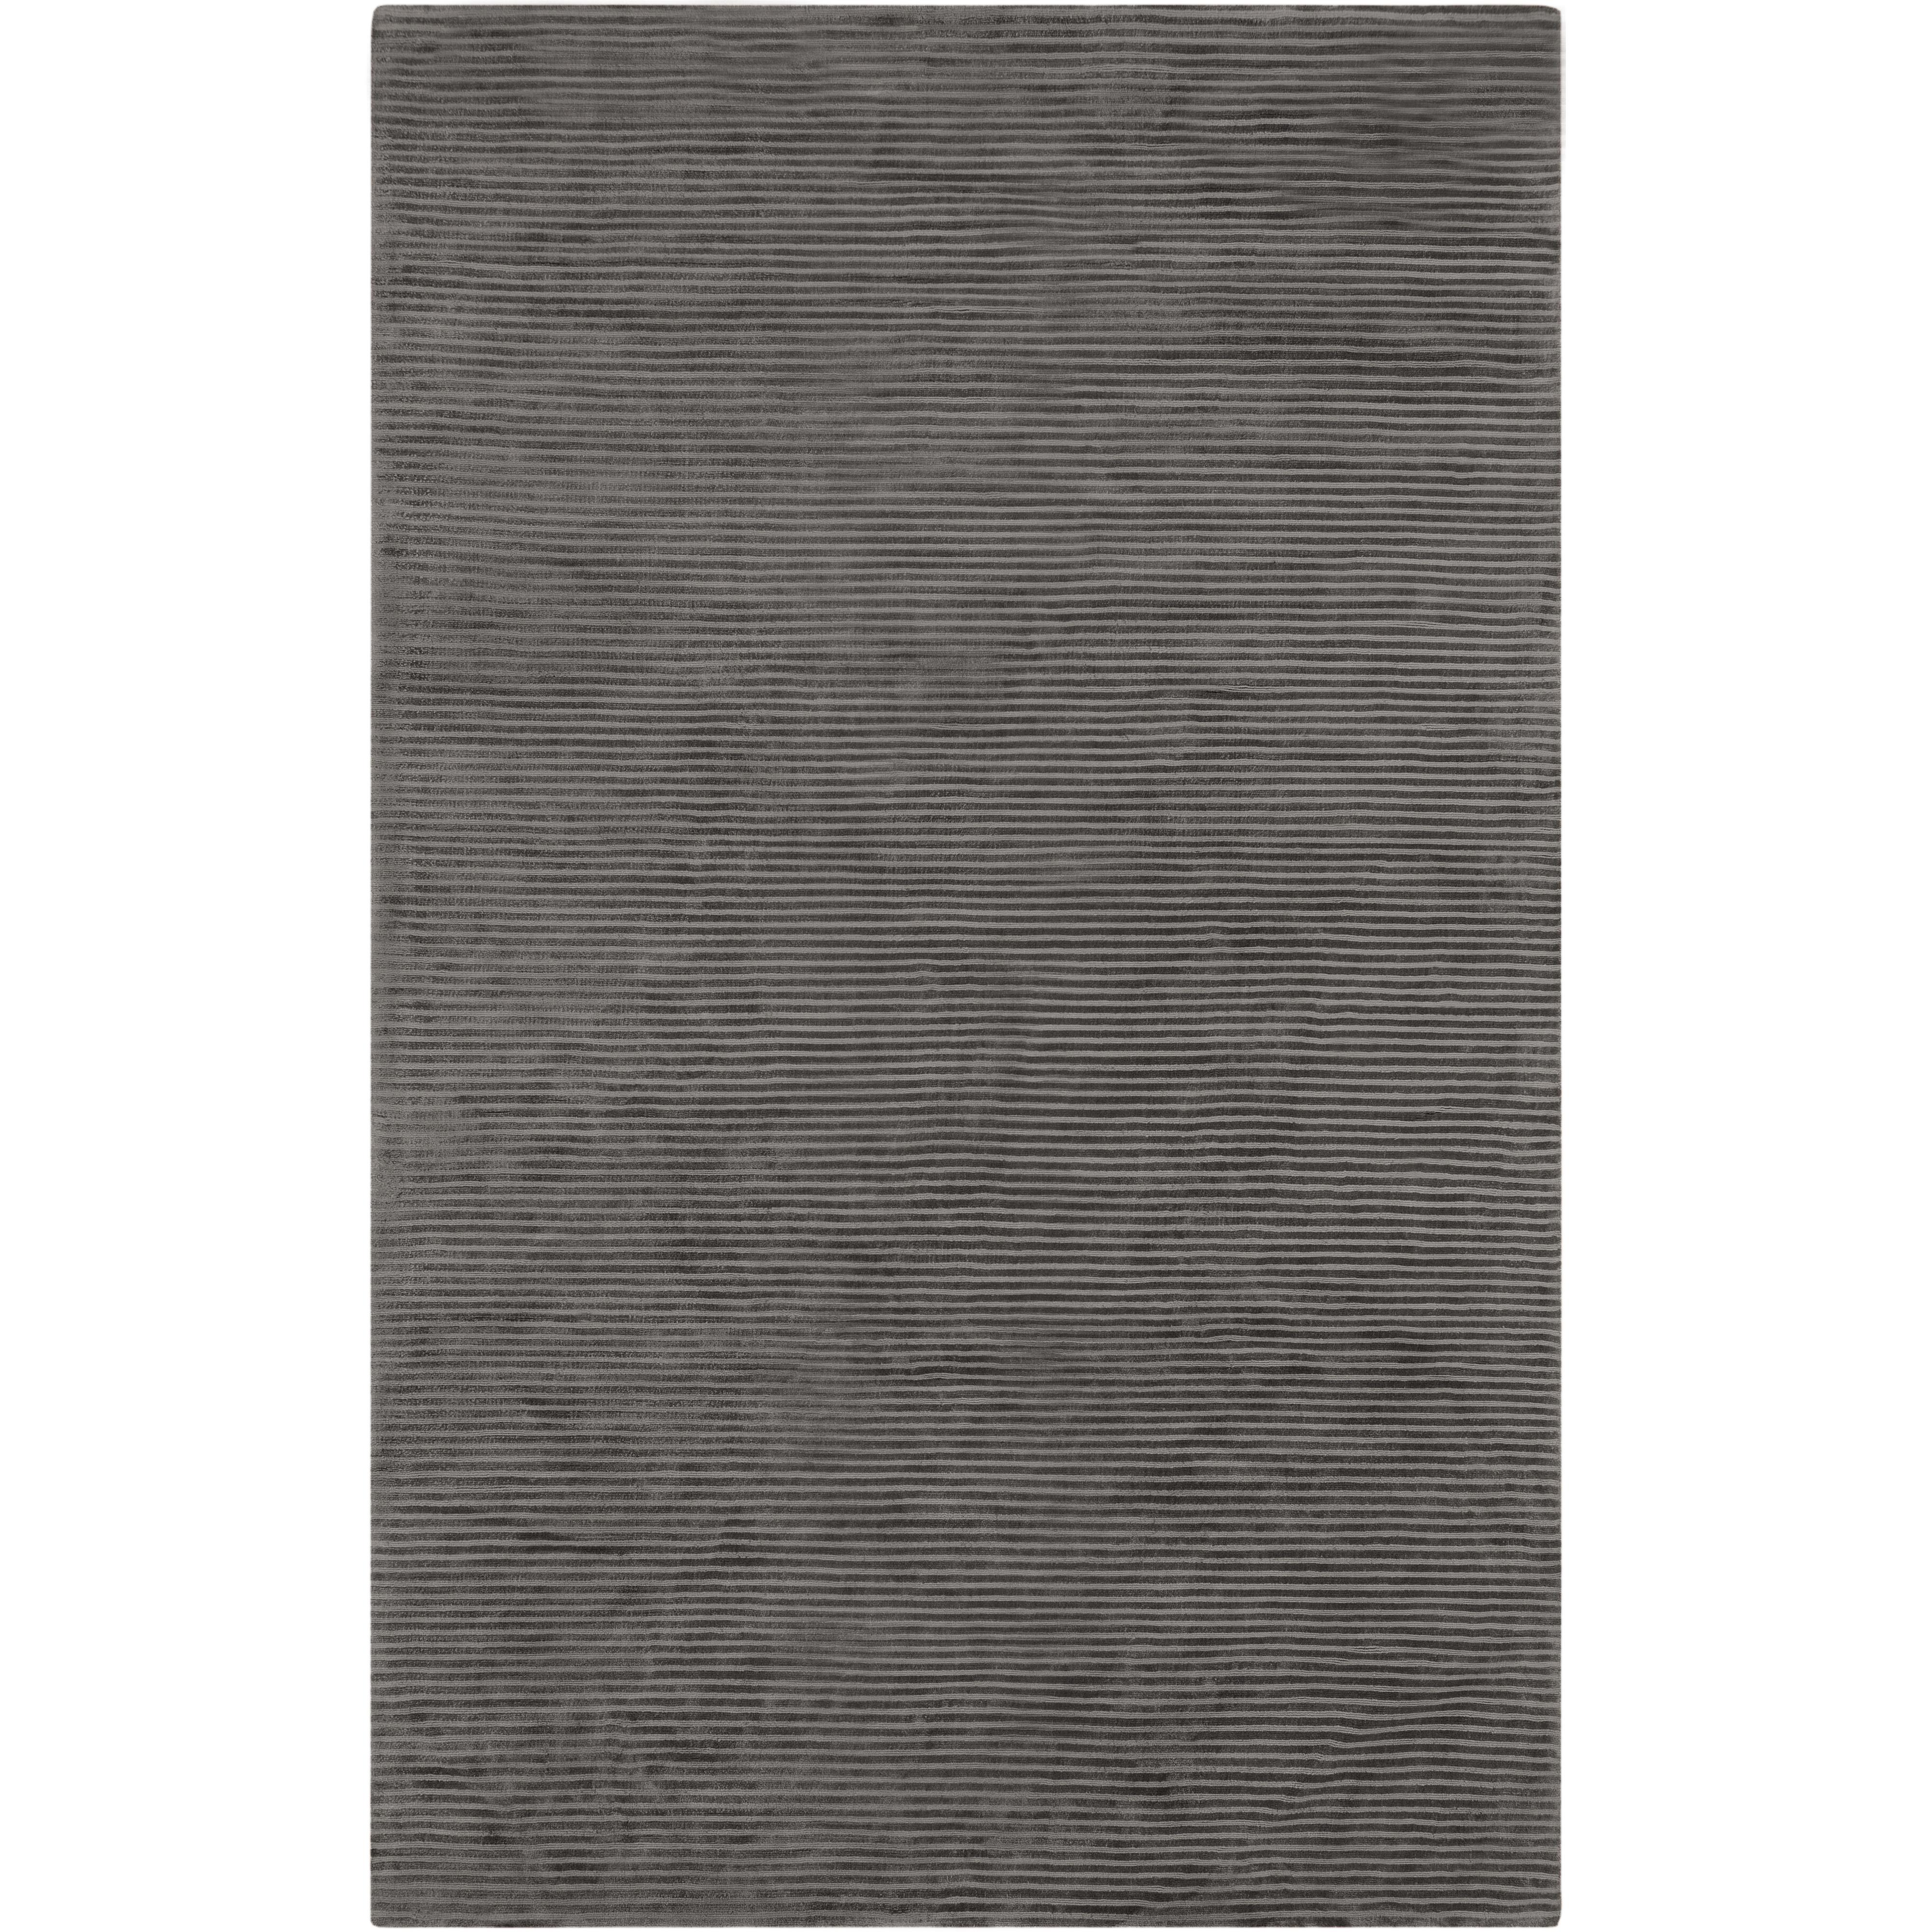 "Surya Graphite 3'3"" x 5'3"" - Item Number: GPH53-3353"